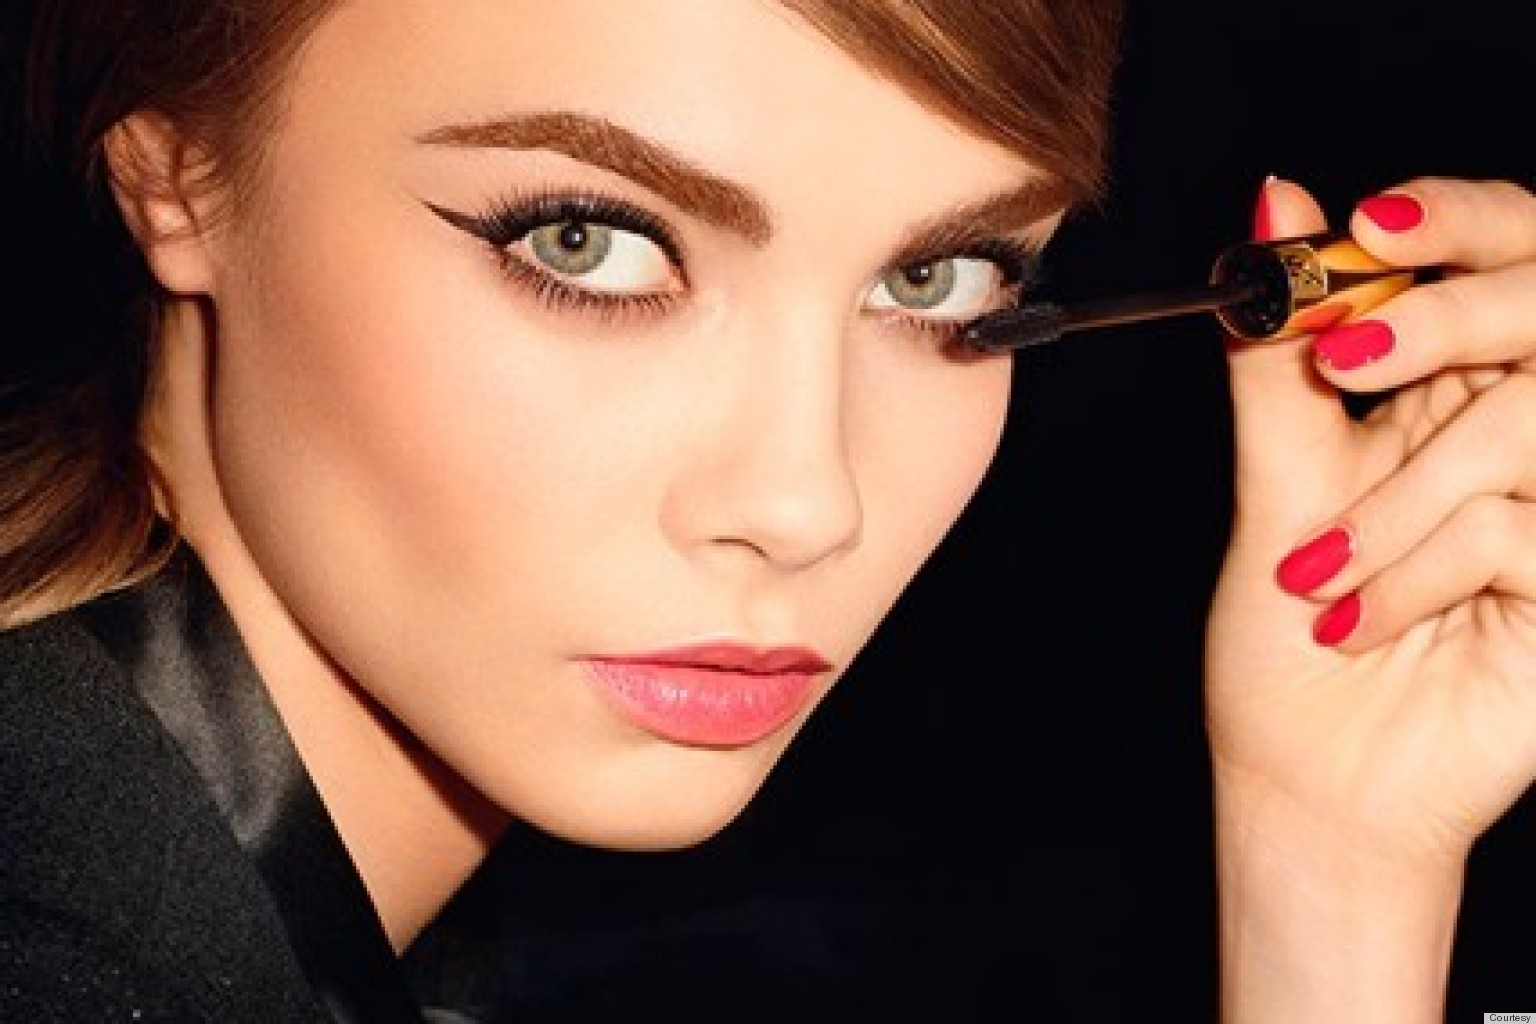 Cara Delevingne Lands YSL Beauty Contract, Continues Her Reigning Tour Of Cool (PHOTOS) | HuffPost